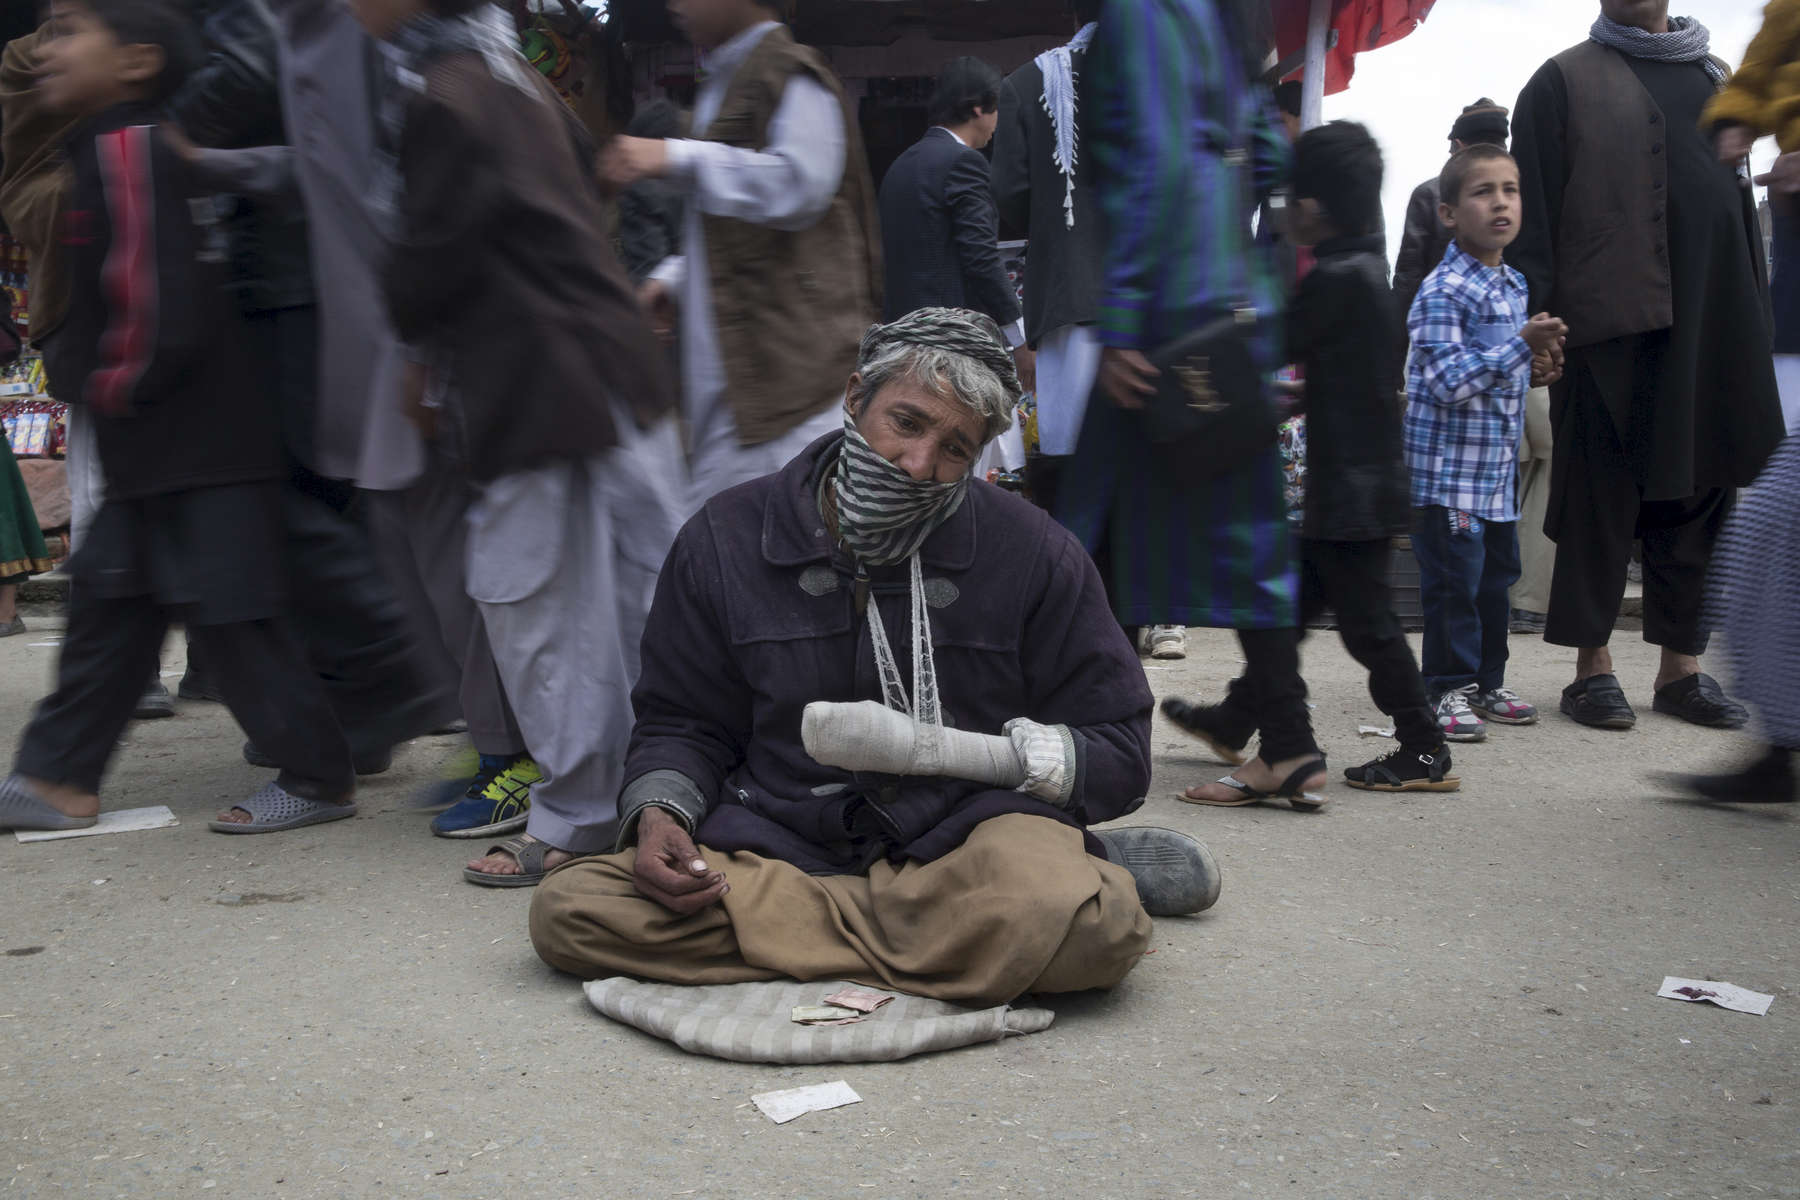 KABUL, AFGHANISTAN -MARCH 20, 2016: Ibrahim, a mine victim begs on the street during the Afghan New Year festival hoping that many would have sympathy in Kabul on March 20, 2016. Many handicapped who are unemployed become beggars. Afghan civilians are at greater risk today than at any time since Taliban rule. According to UN statistics, in the first half of 2016 at least 1,600 people had died, and more than 3,500 people were injured, a 4 per cent increase in overall civilian causalities compared to the same period last year. The upsurge in violence has had devastating consequences for civilians, with suicide bombings and targeted attacks by the Taliban and other insurgents causing 70 percent of all civilian casualties.